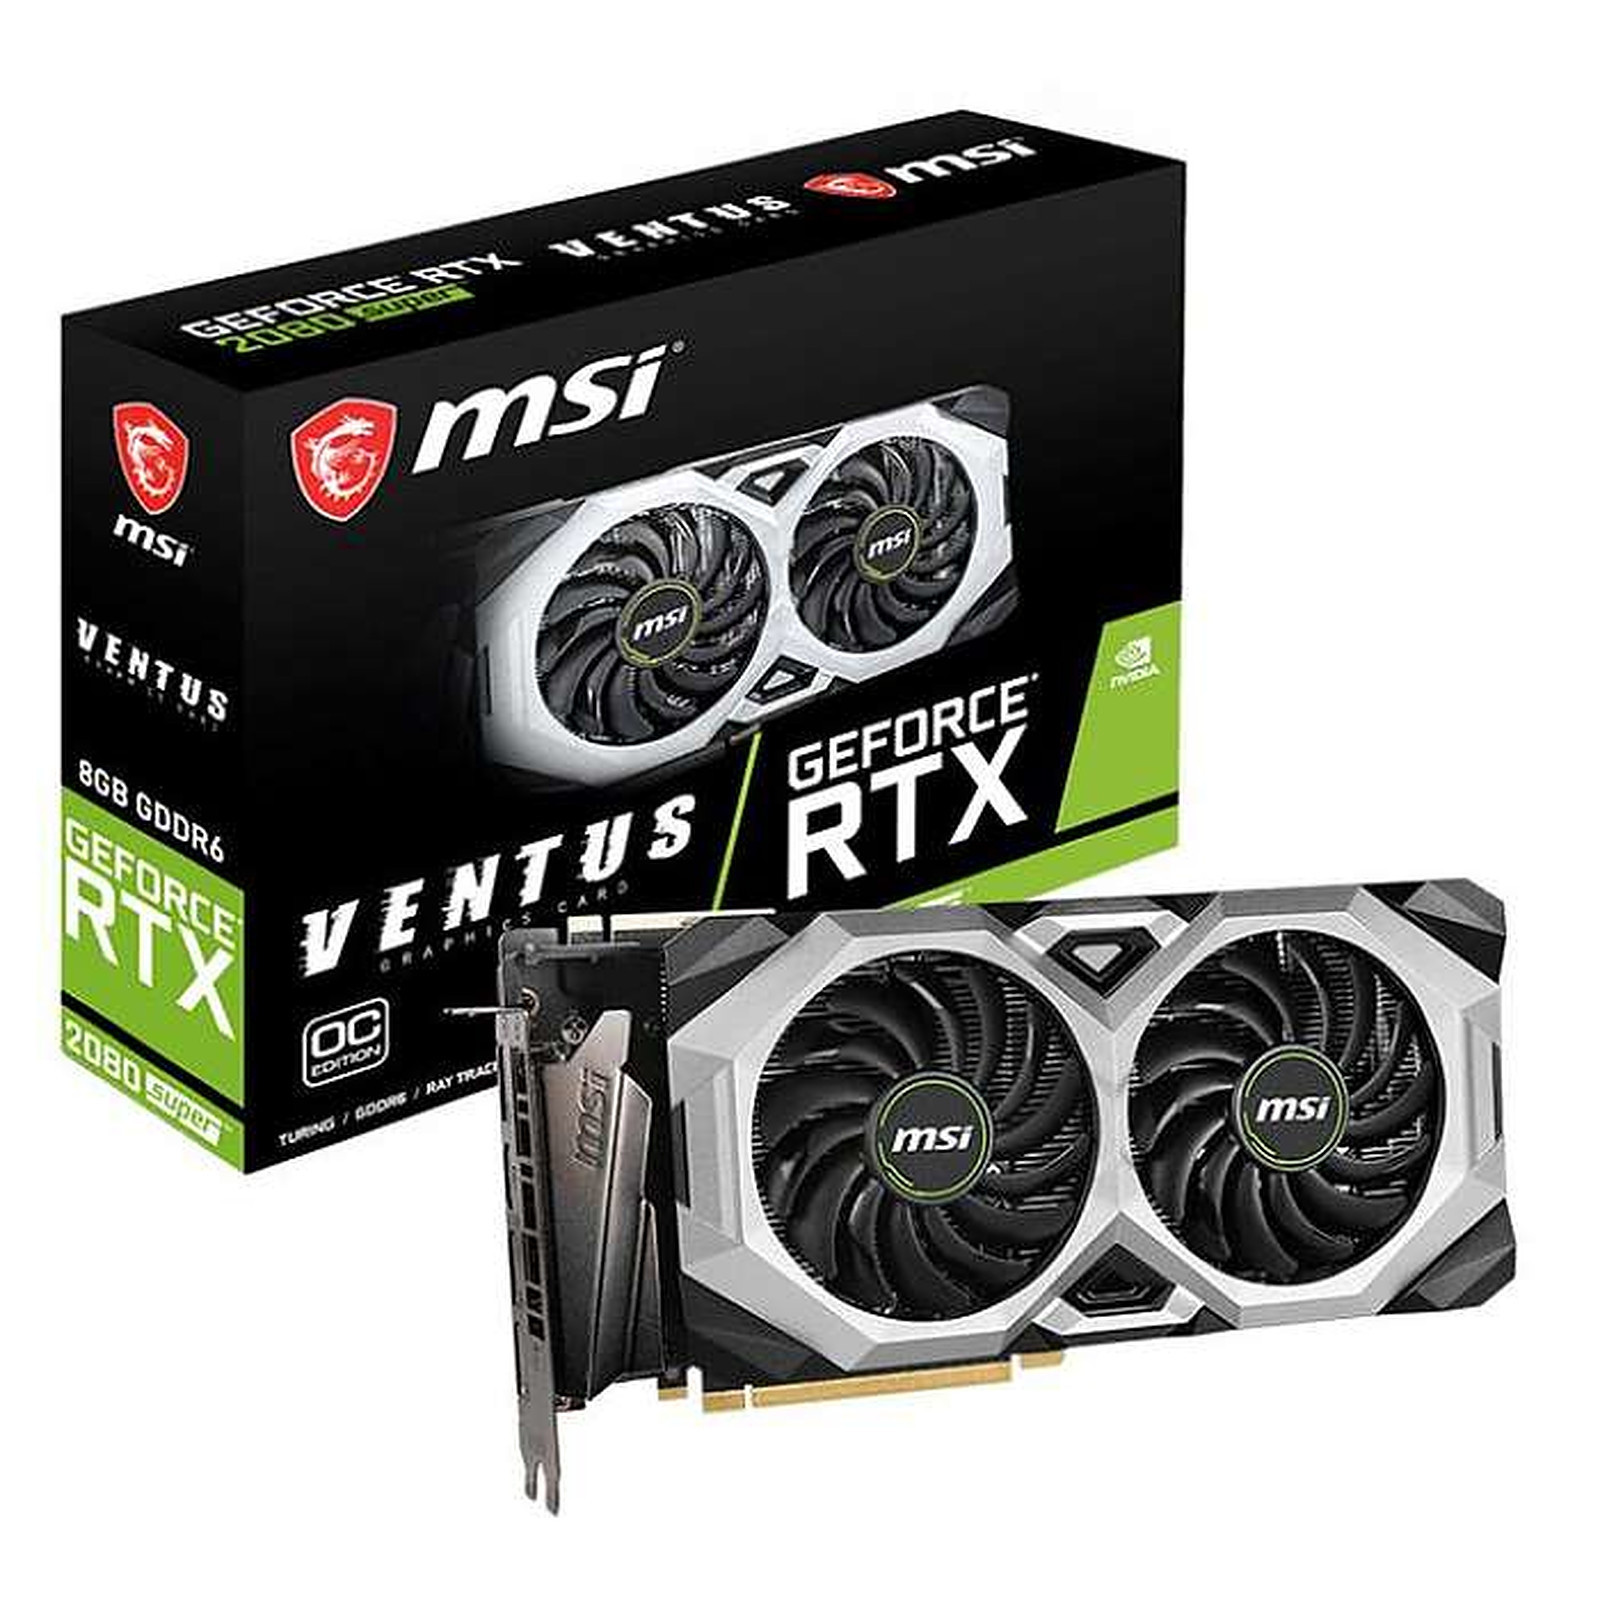 MSI GeForce RTX 2080 SUPER VENTUS XS OC